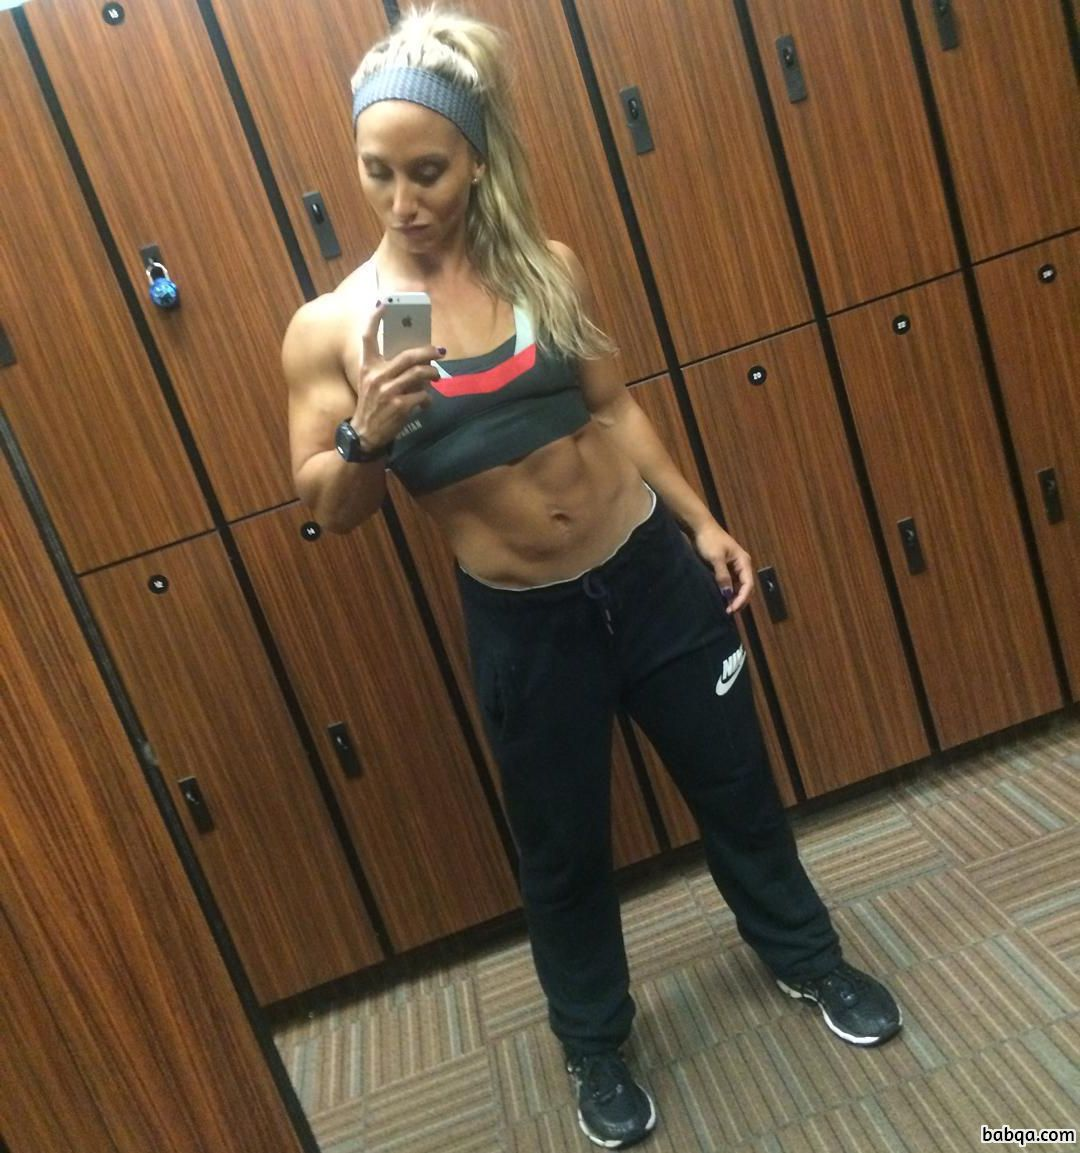 awesome female with muscle body and muscle biceps pic from linkedin